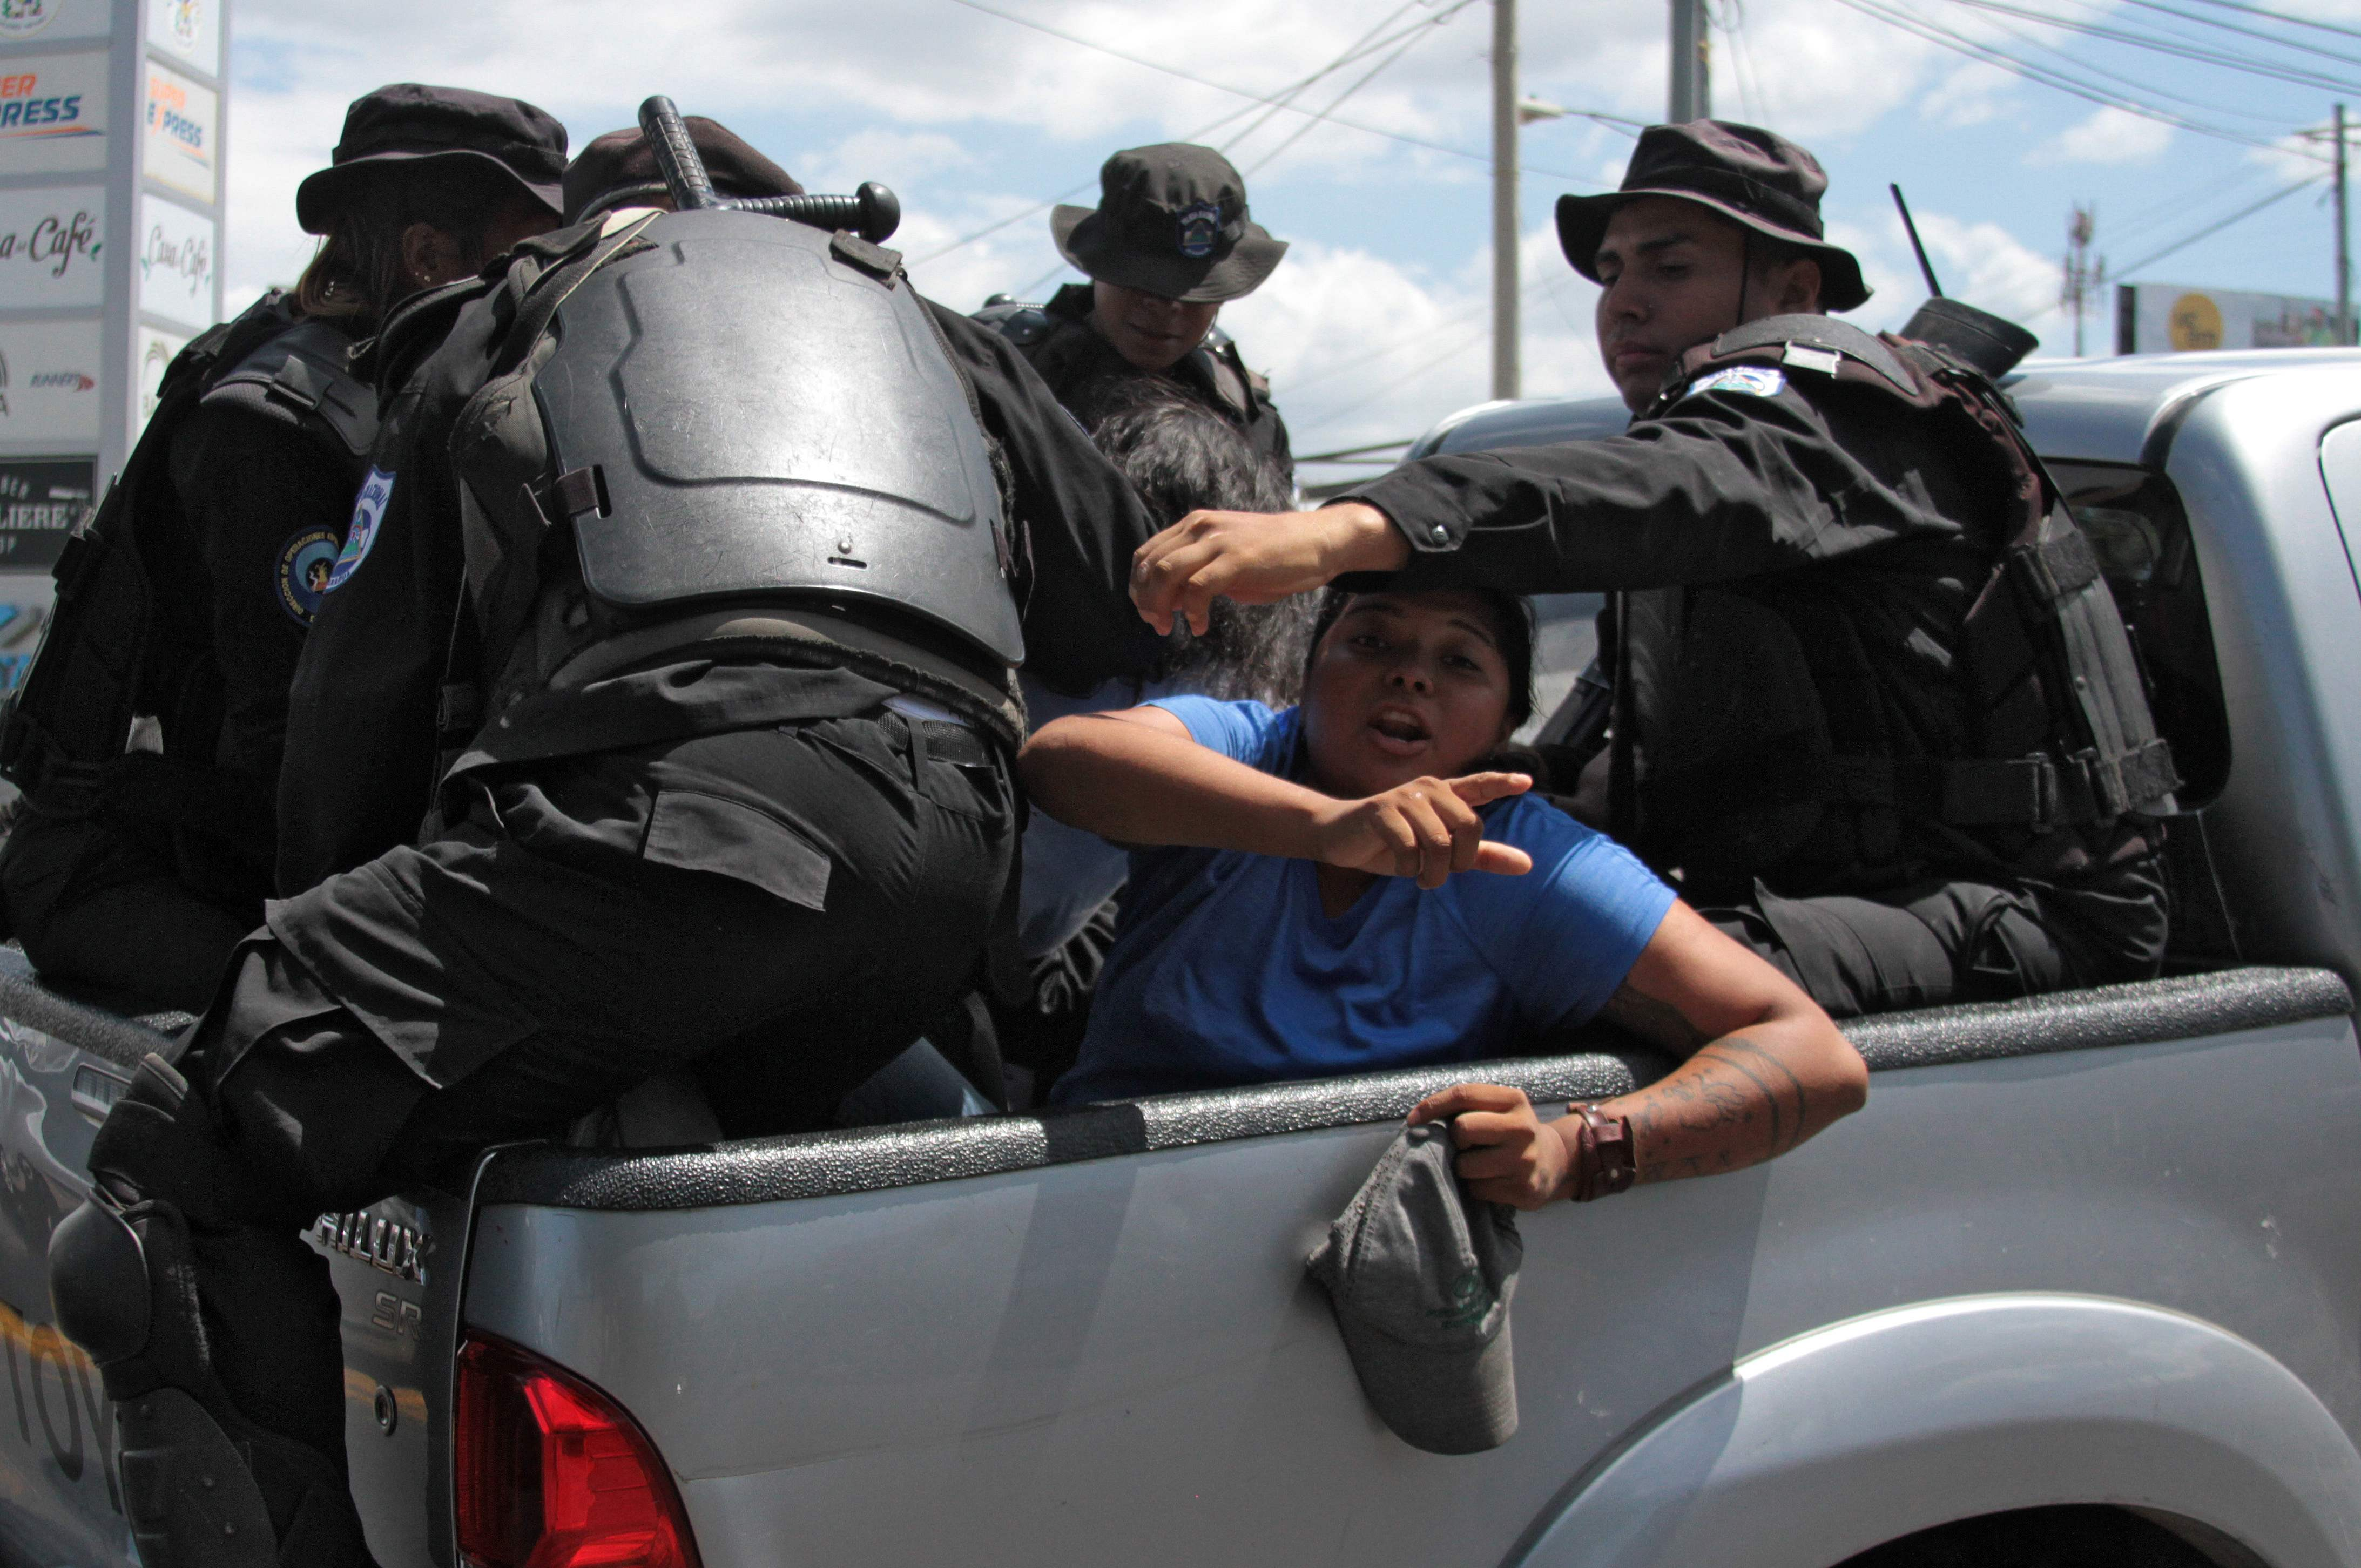 Nicaraguan riot police officers leave with two people arrested while their were heading to a demonstration called by opposition groups to demand the government the release of those arrested for taking part in anti-government protests, in Managua on March 16, 2019. - Nicaragua on Friday released 50 prisoners held for participating in anti-government protests, giving a fresh impetus to peace talks on ending the country's long running political crisis. More than 700 people were detained during a deadly crackdown on rallies that began last April and quickly grew into broad opposition to President Daniel Ortega iron-fisted rule. (Photo by Maynor Valenzuela / AFP)